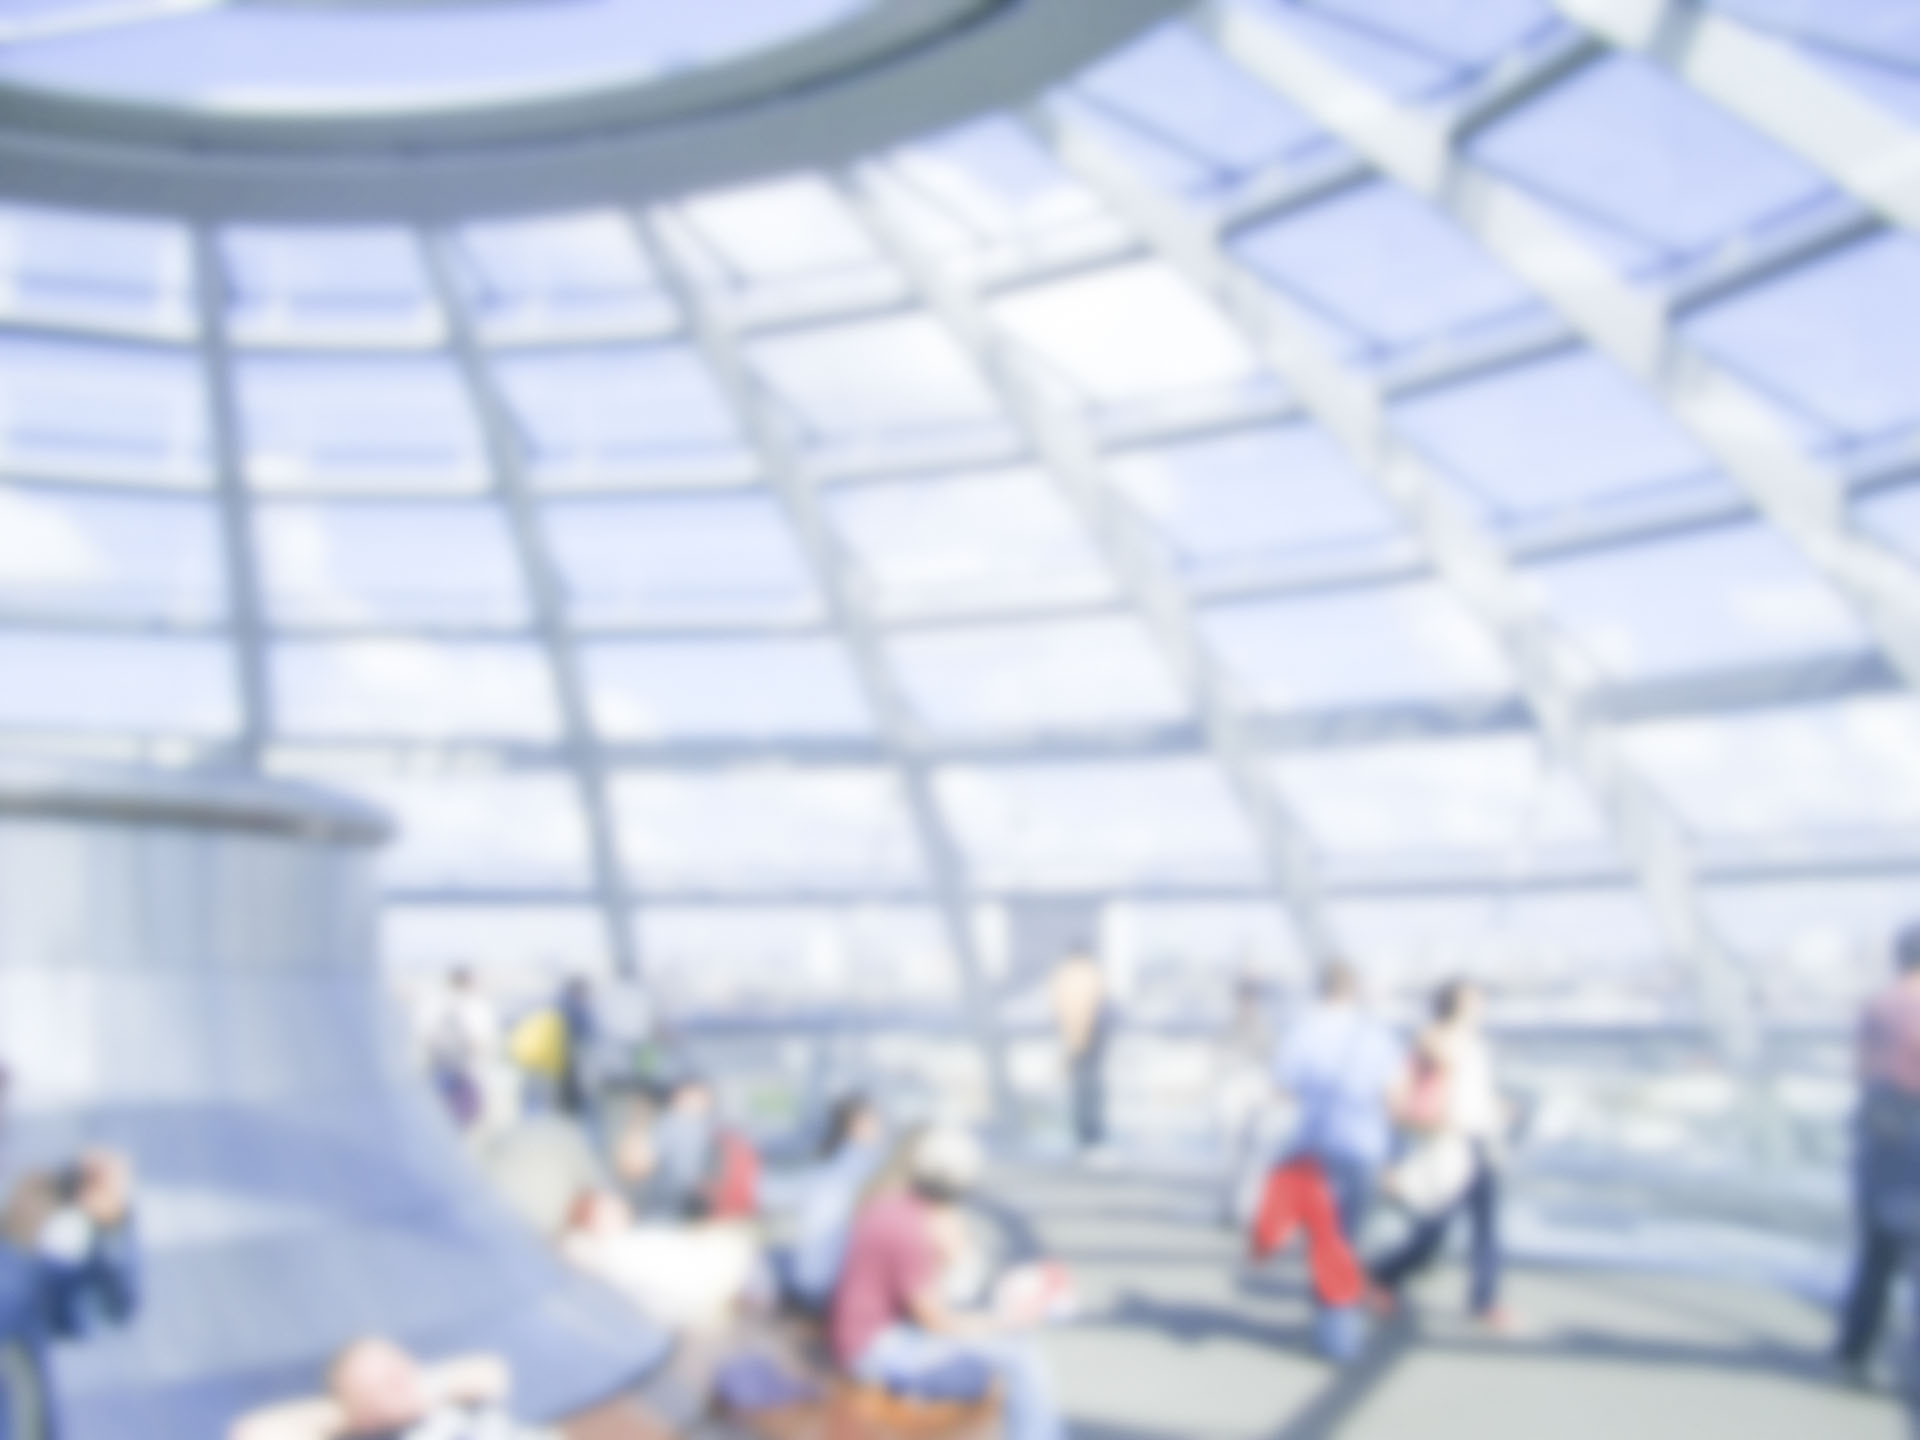 Defocused Background with the Glass Dome of the German Parliament in Berlin. Intentionally blurred post production